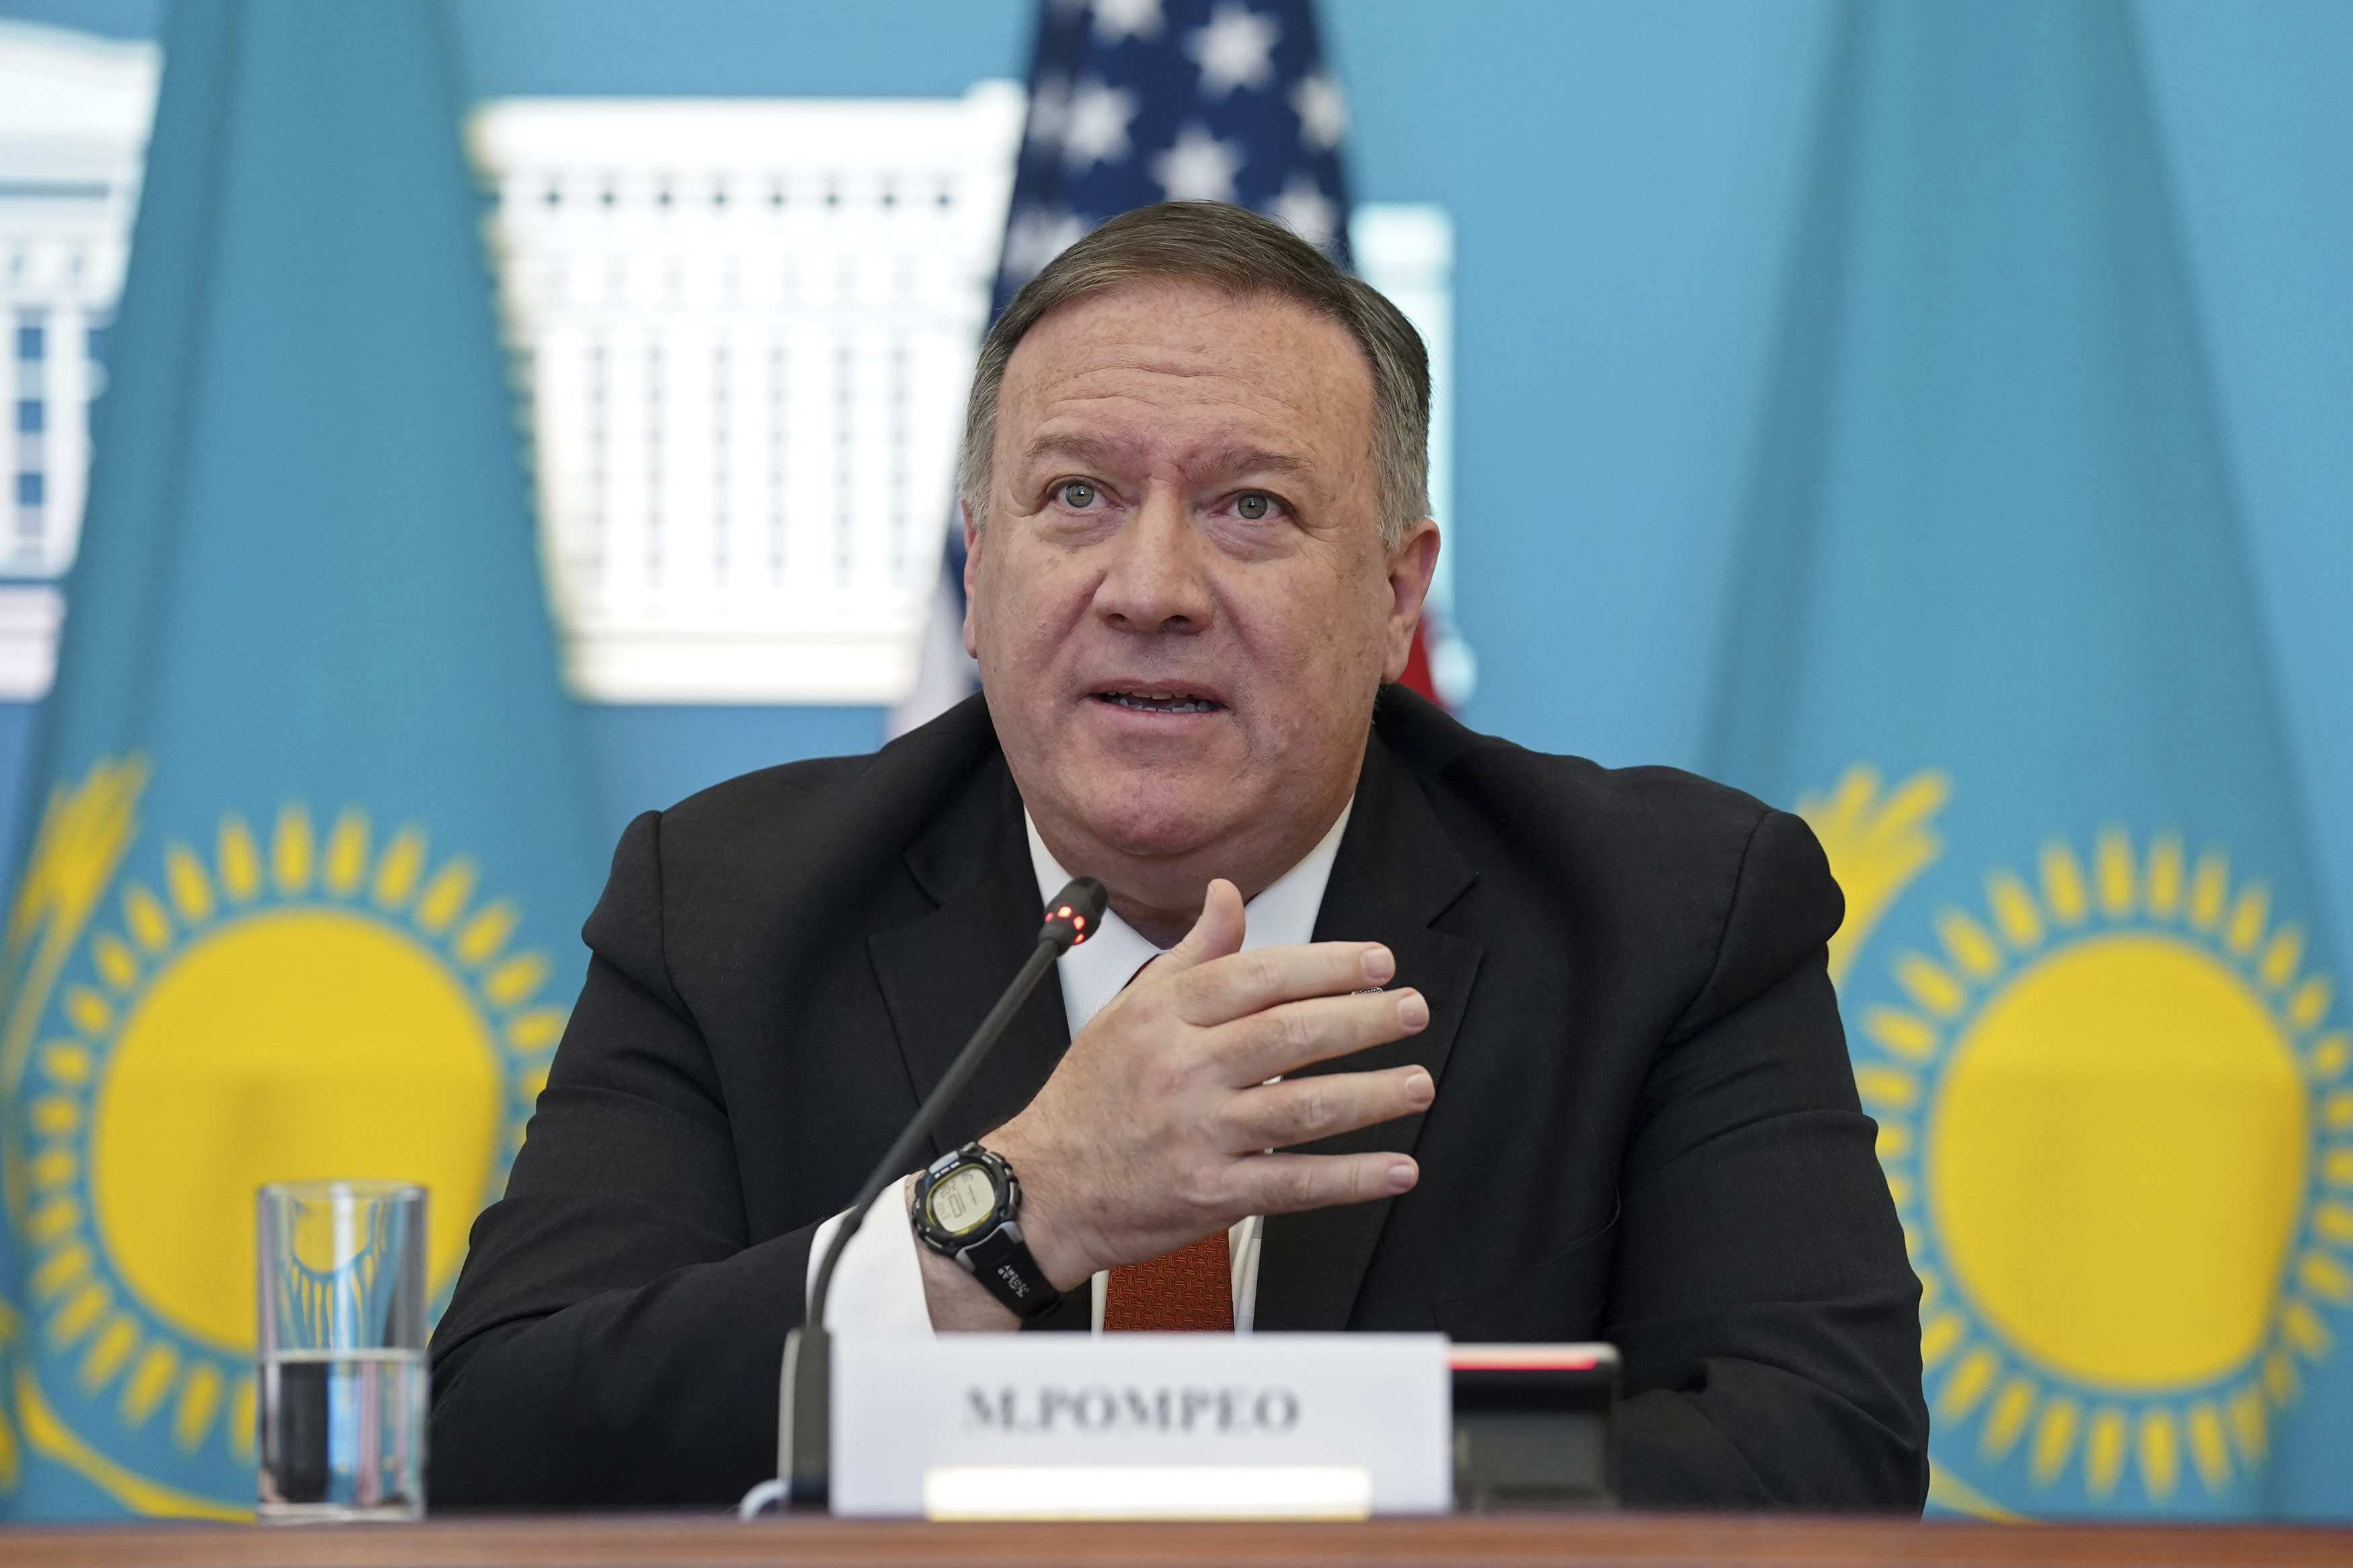 U.S. Secretary of State Mike Pompeo holds a joint news conference with Kazakh Foreign Minister Mukhtar Tleuberdi at the Ministry of Foreign Affairs in Nur-Sultan, Kazakhstan, Sunday, Feb. 2, 2020. (Kevin Lamarque/Pool Photo via AP)